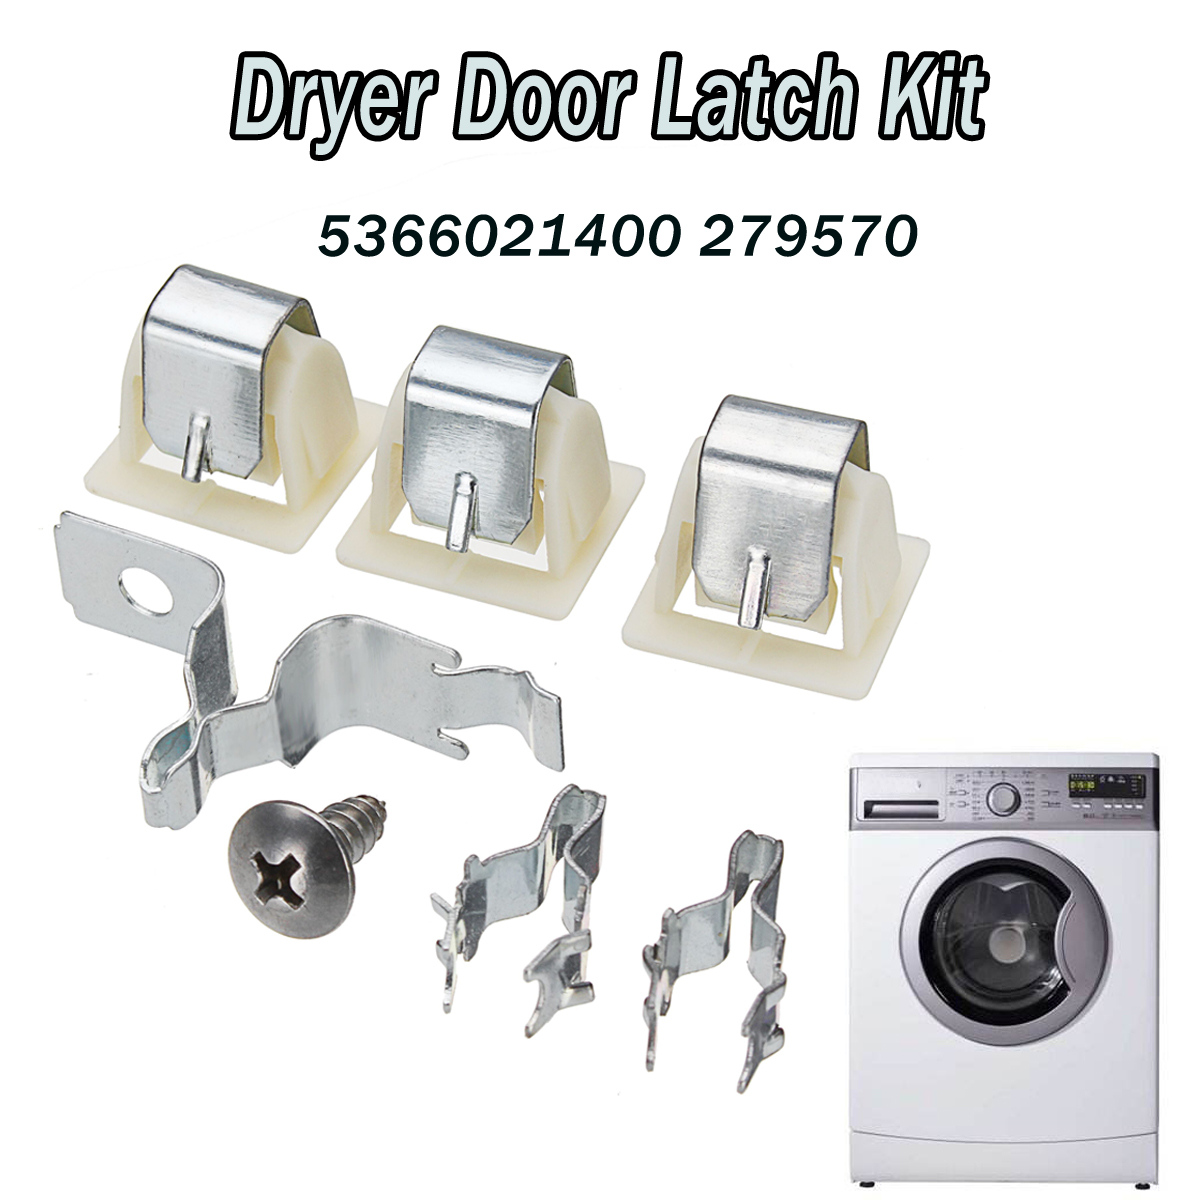 small resolution of dryer door latch kit part for electrolux frigidaire kenmore 5366021400 279570 in clothes dryer parts from home appliances on aliexpress com alibaba group